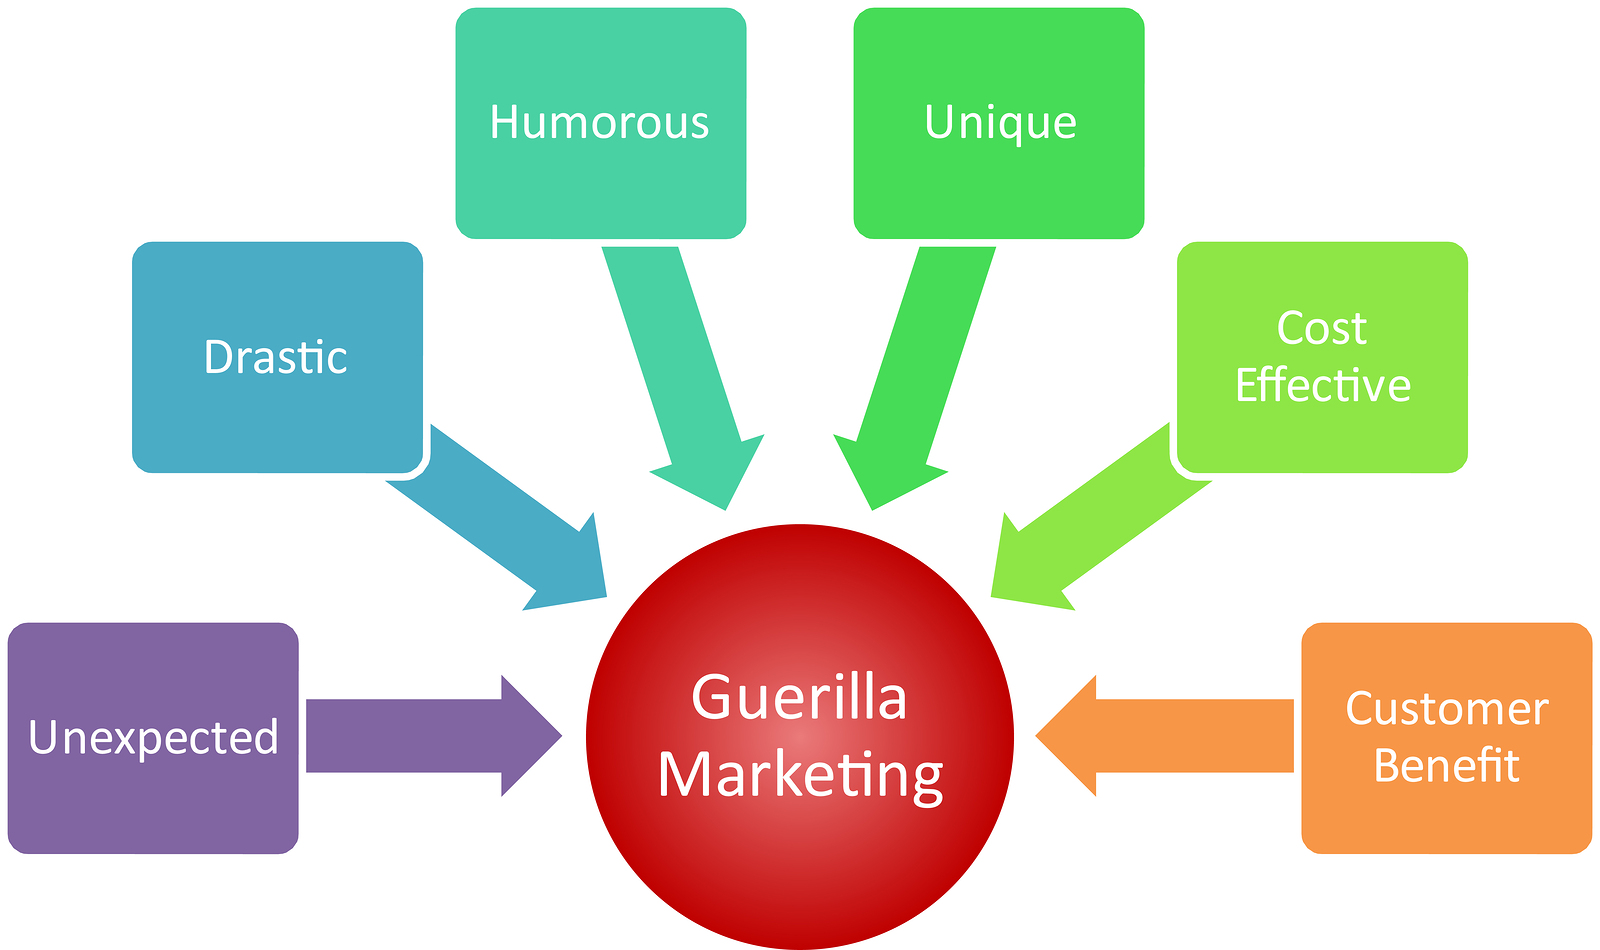 guerilla-marketing-business-diagram.jpg